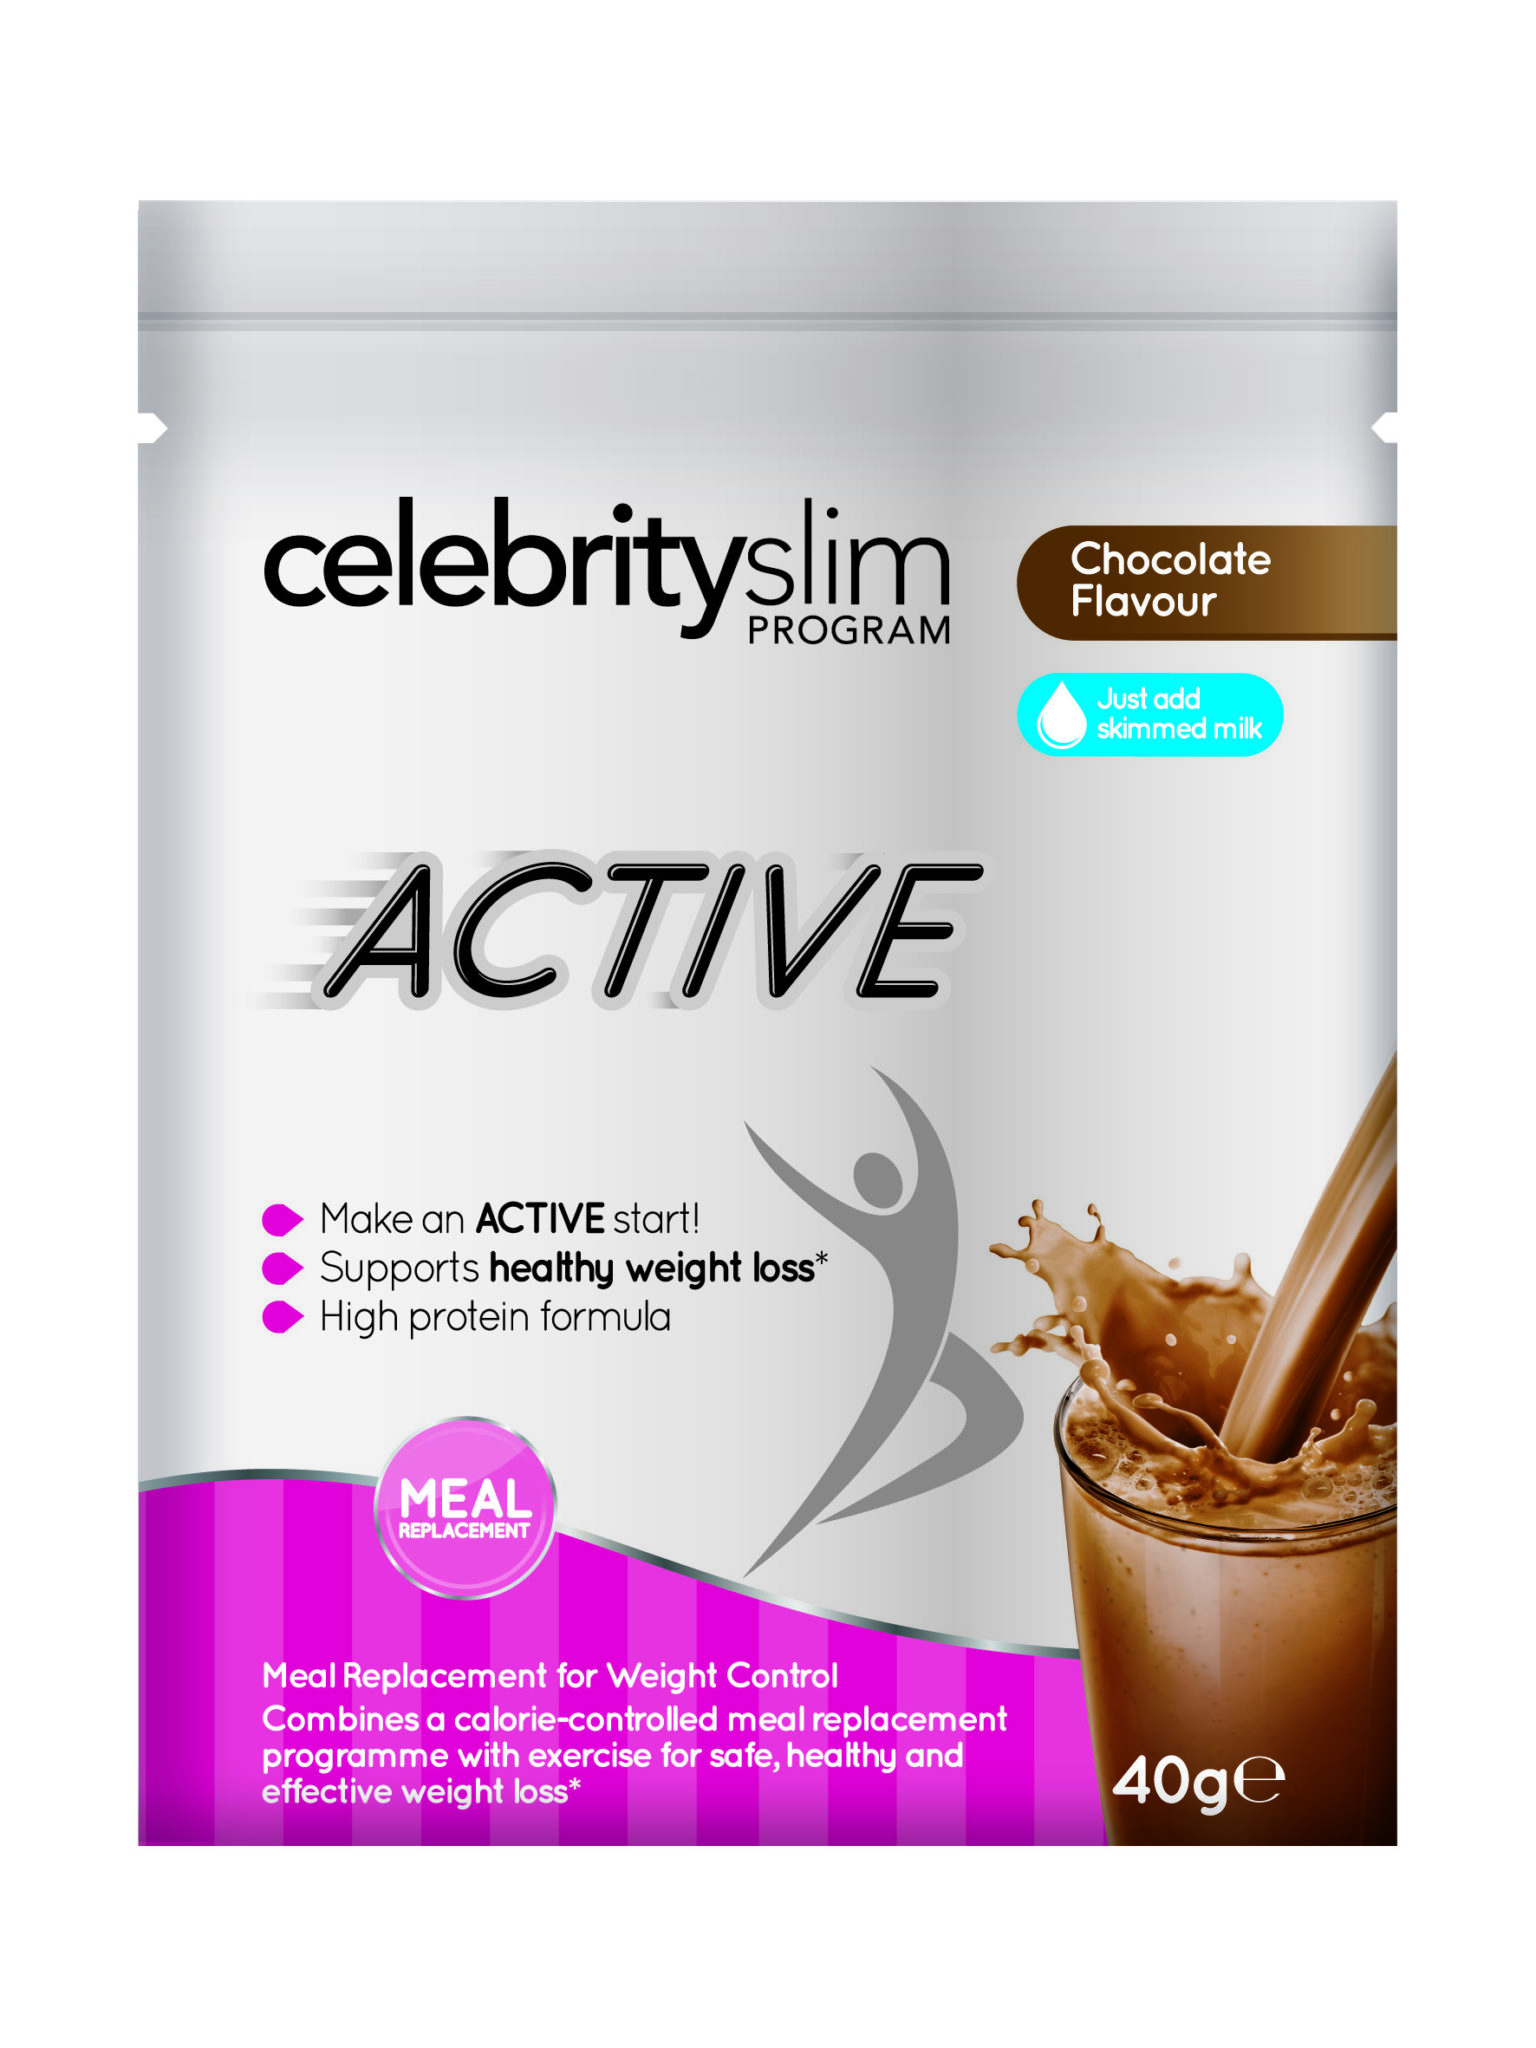 Celebrity slim active shakes and fidget